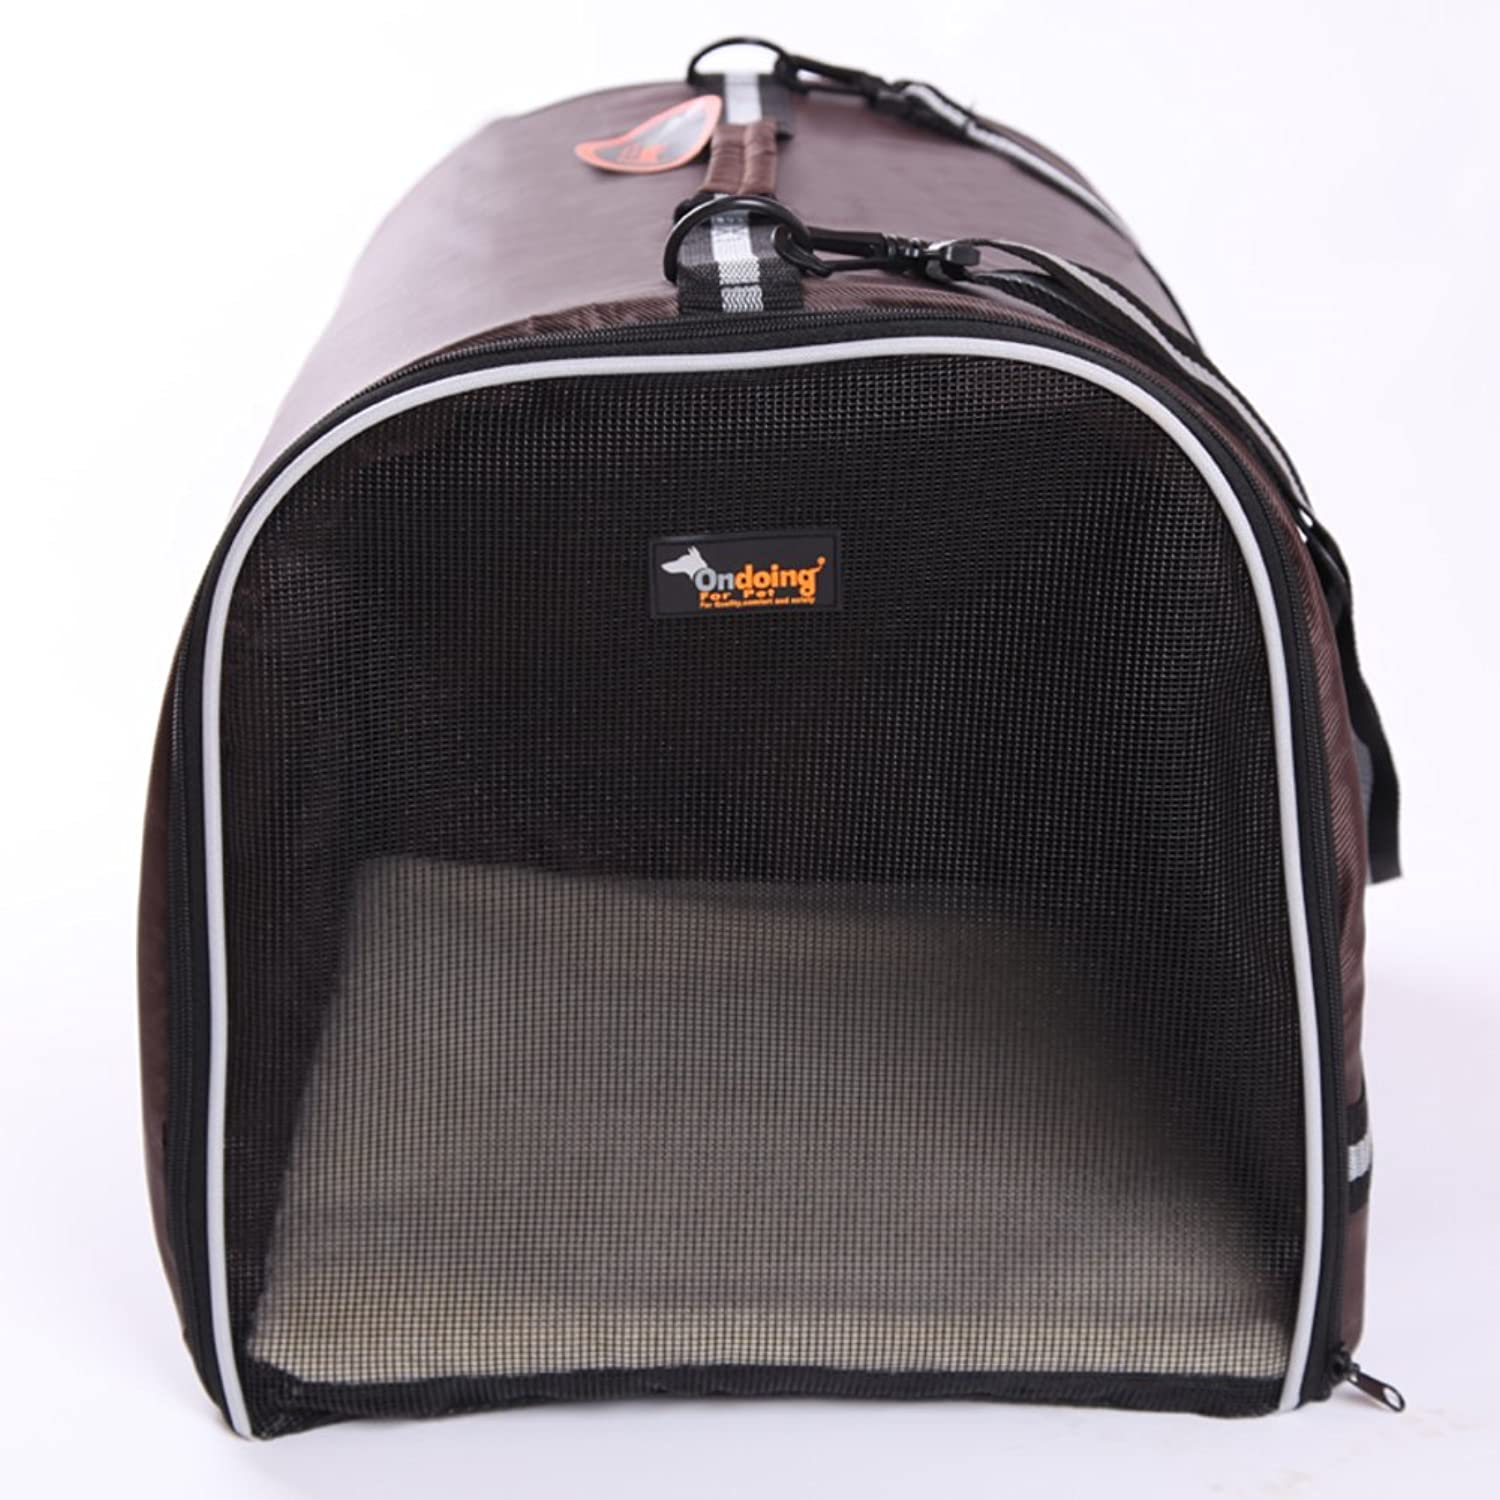 Cat and Dog Common nest cat Yurt nestA 48x34cm(19x13inch)